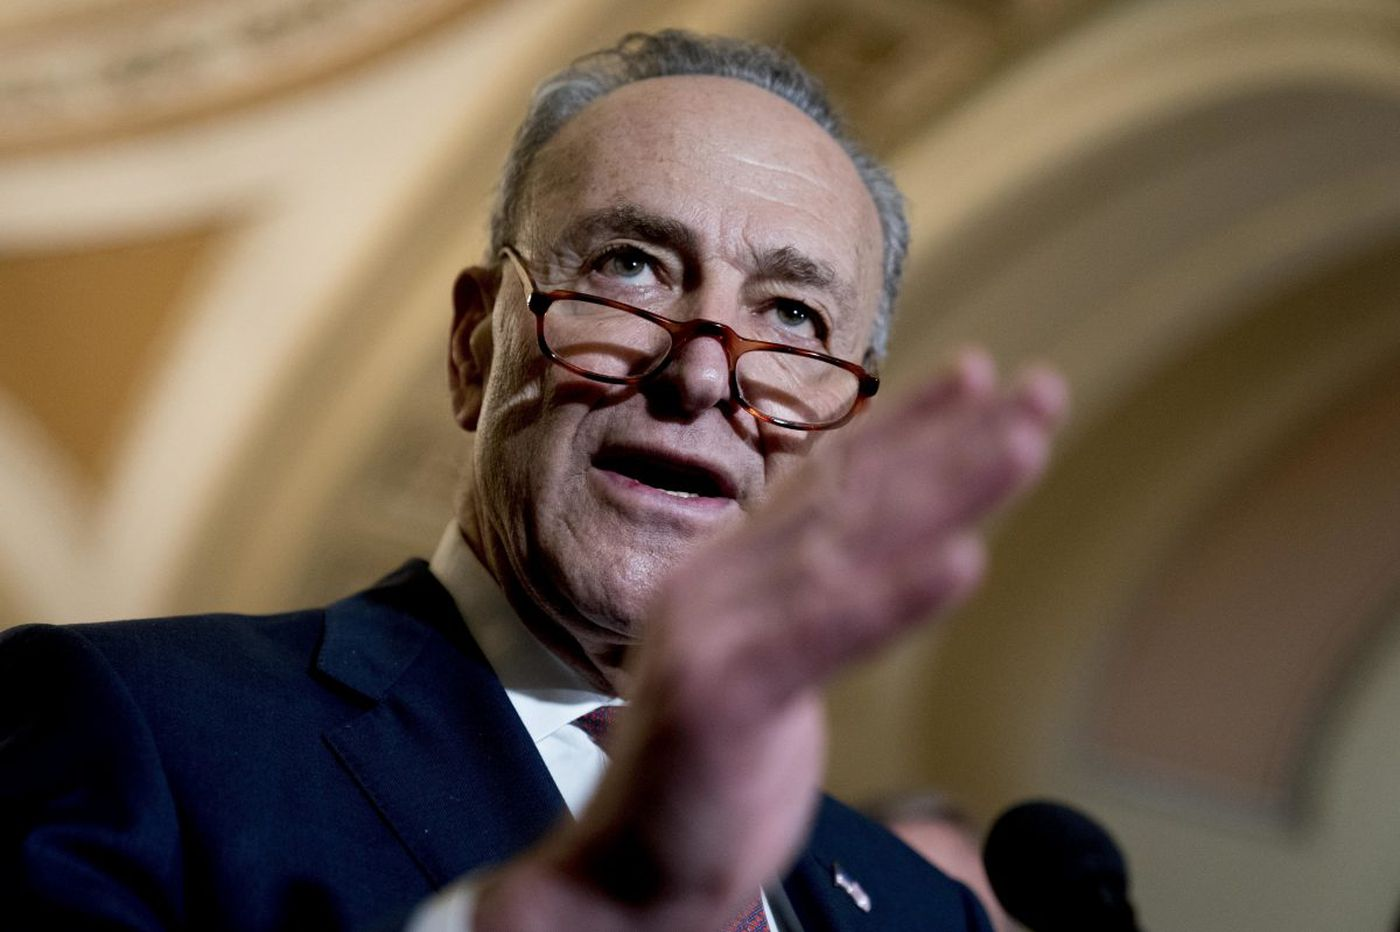 Schumer has rescinded offer to Trump on border wall funding